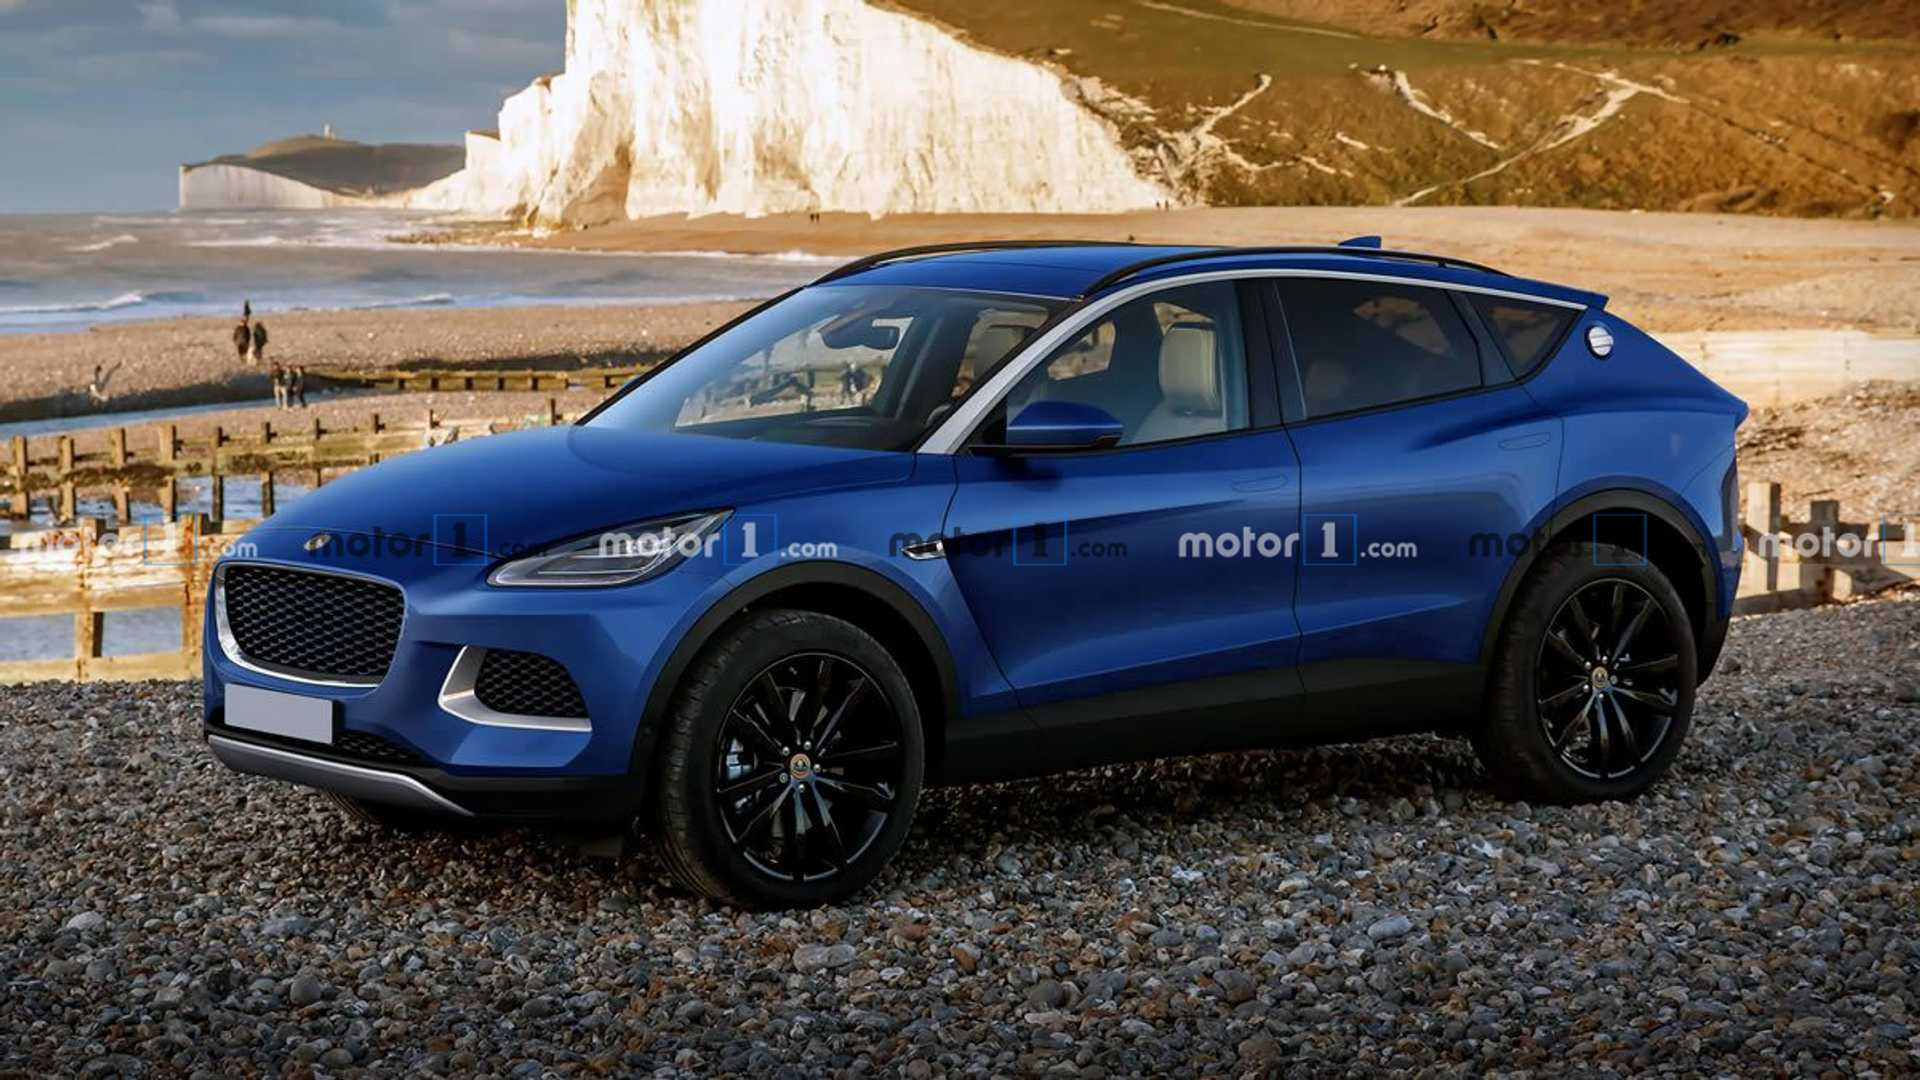 Made In China Lotus SUV Will Be Electric And Have 750 HP: Report